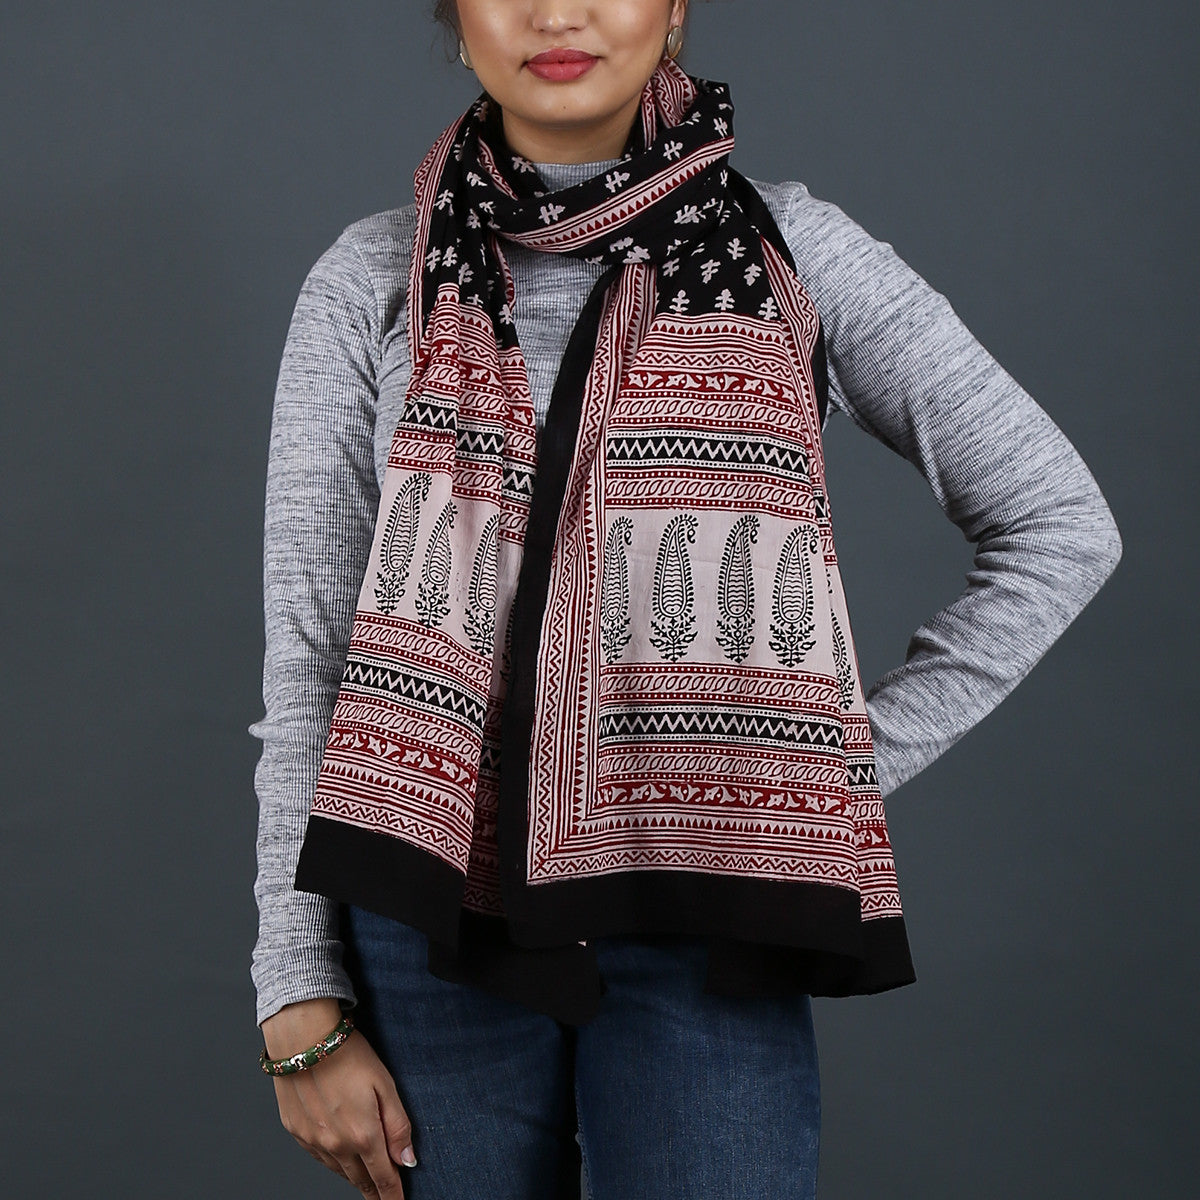 Bagh Hand Block Printed Stole in Cotton 6